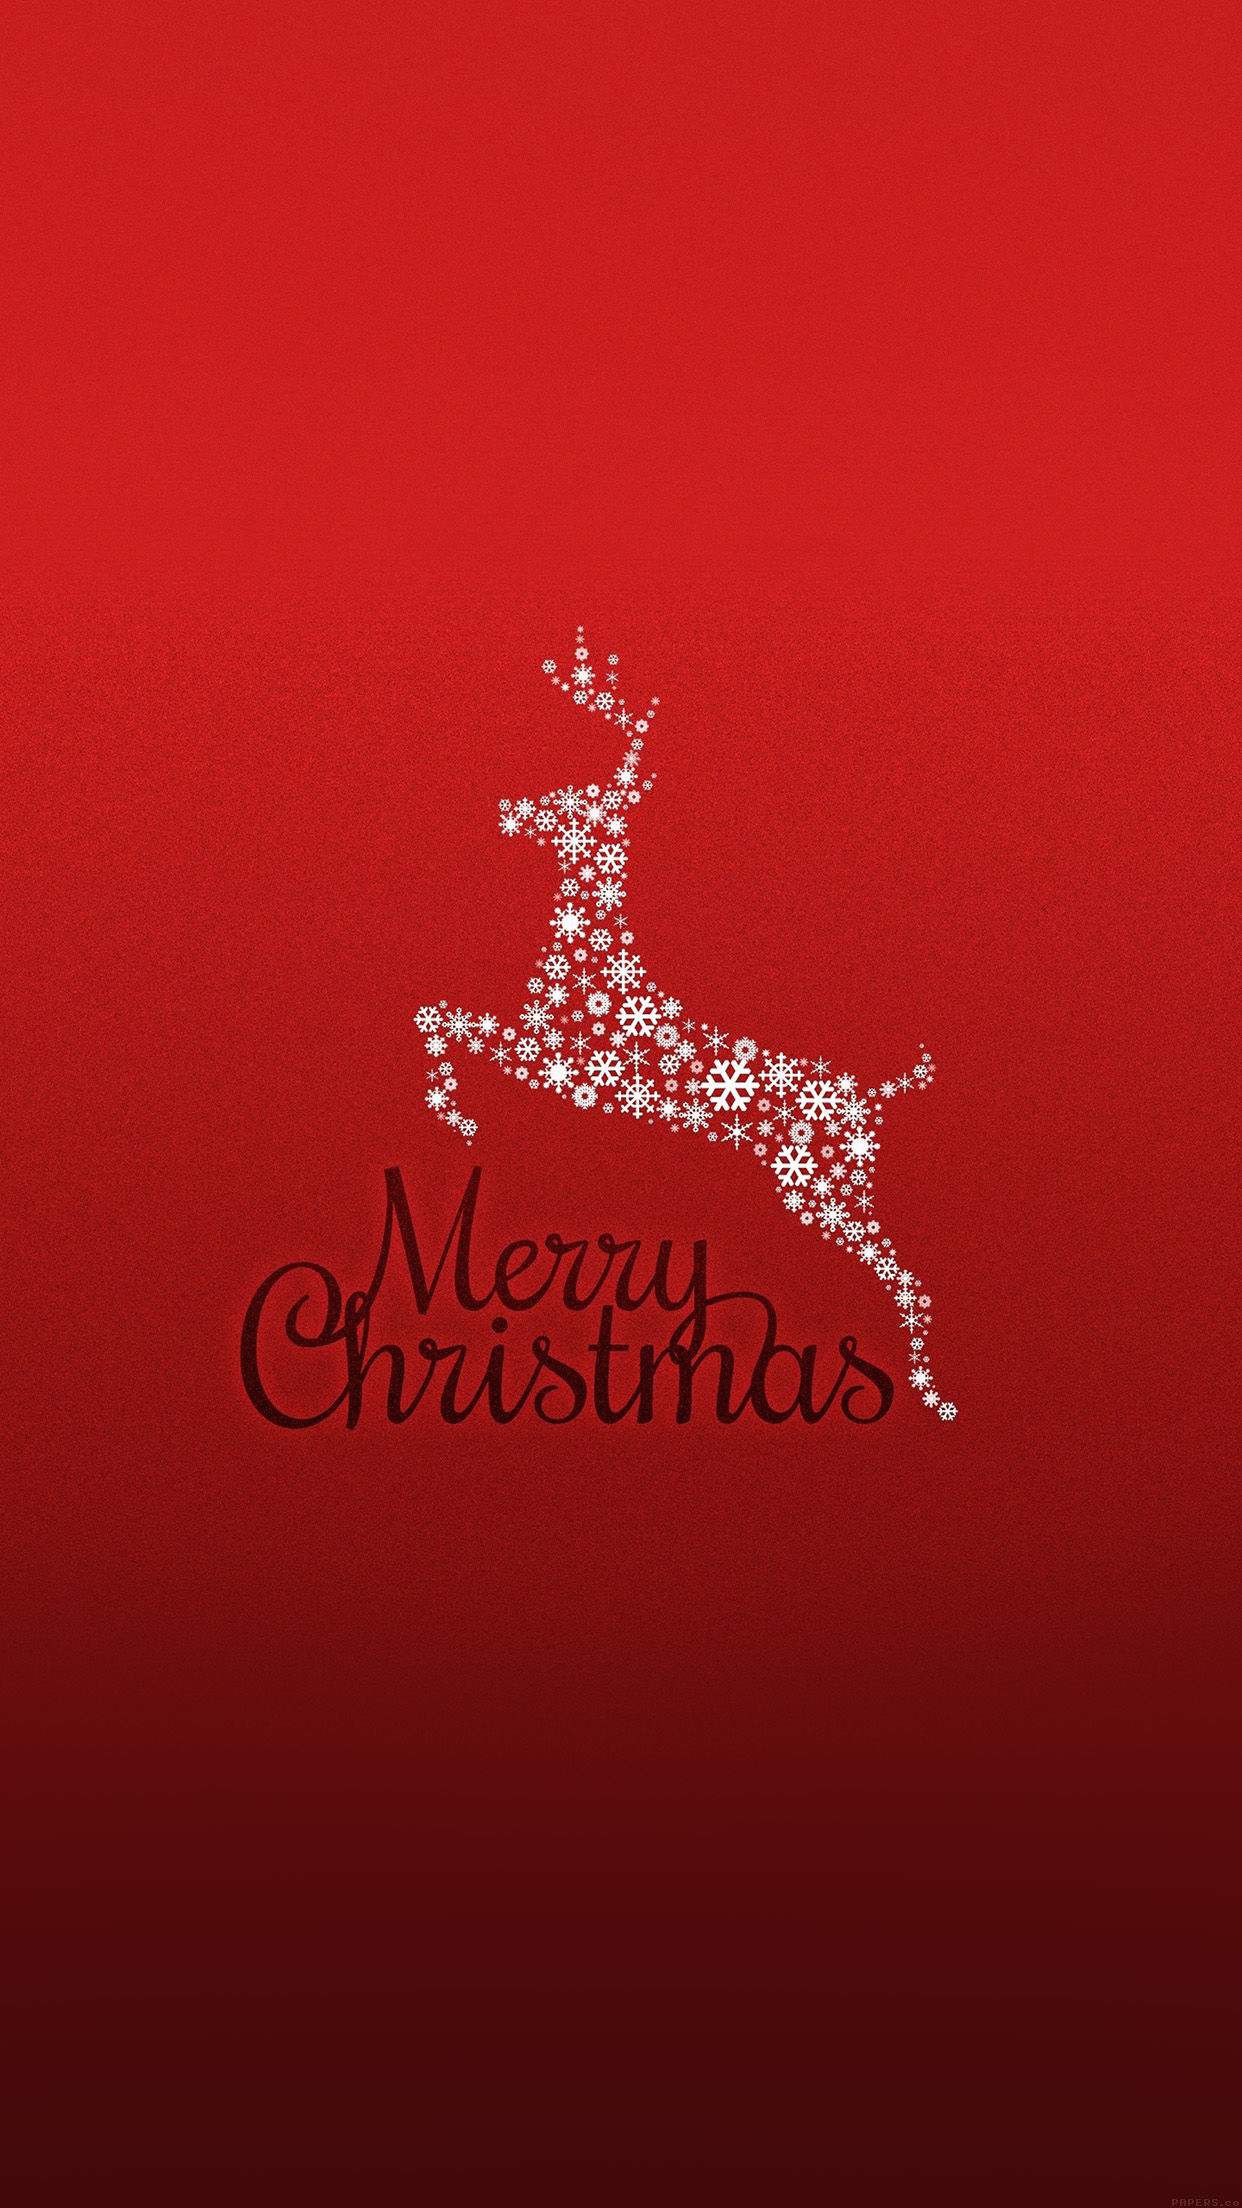 Merry Christmas Reindeer Wallpaper Pictures, Photos, and Images ...